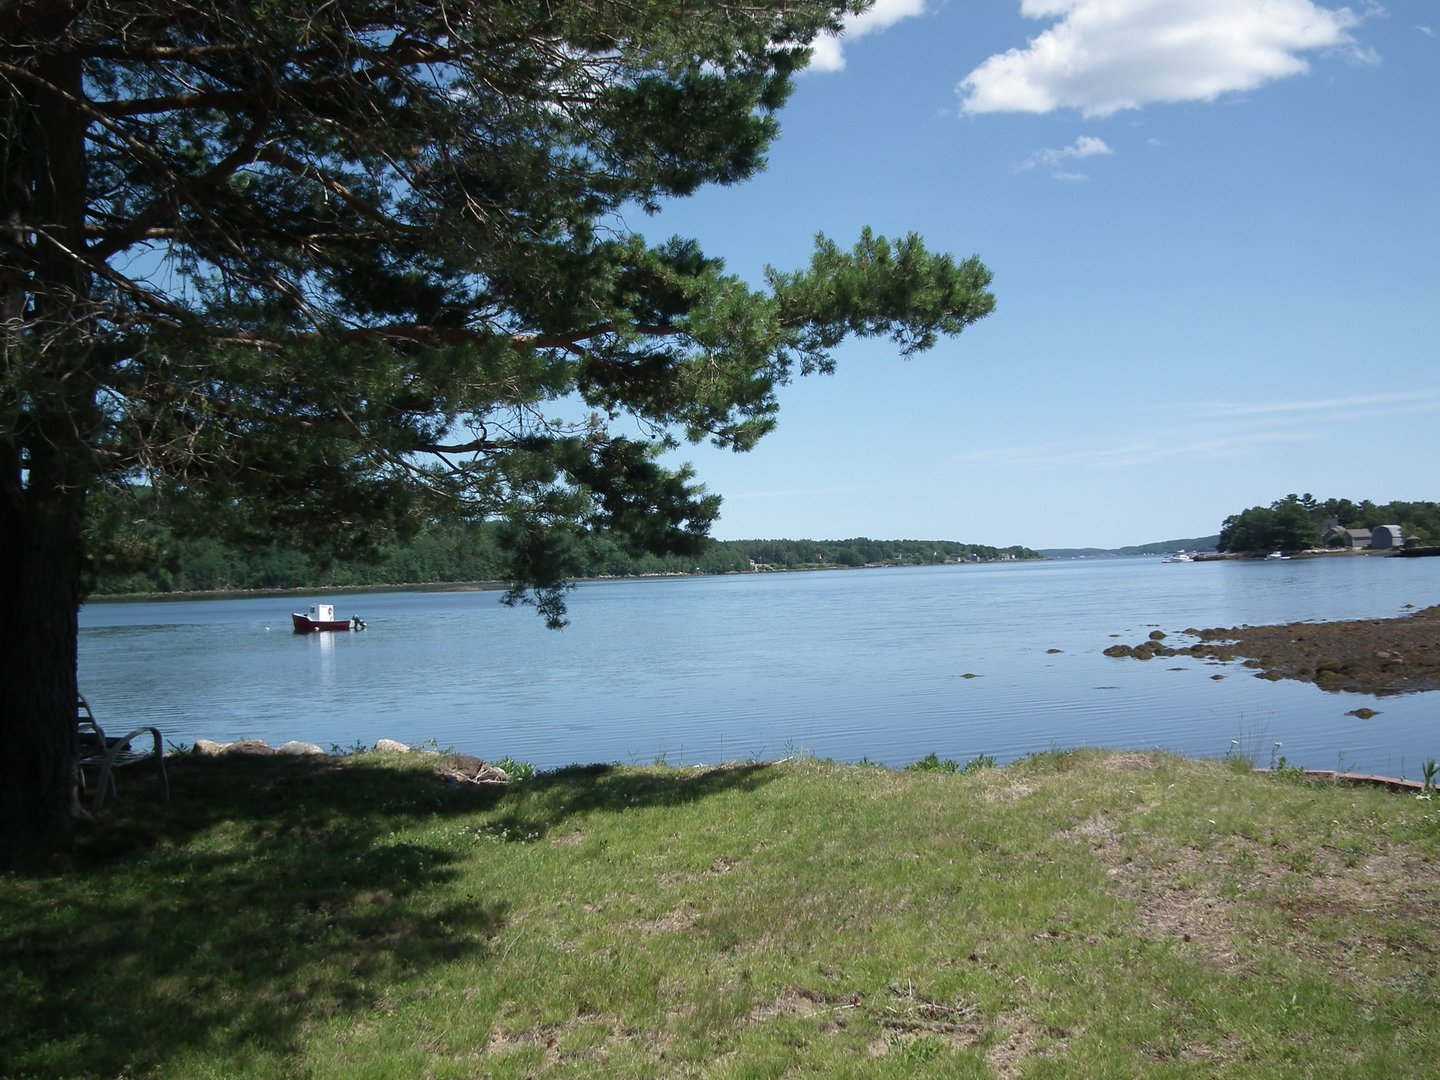 House for rent at 1751 NS-331, Pleasantville, NS. This is the water view with water view and lawn.